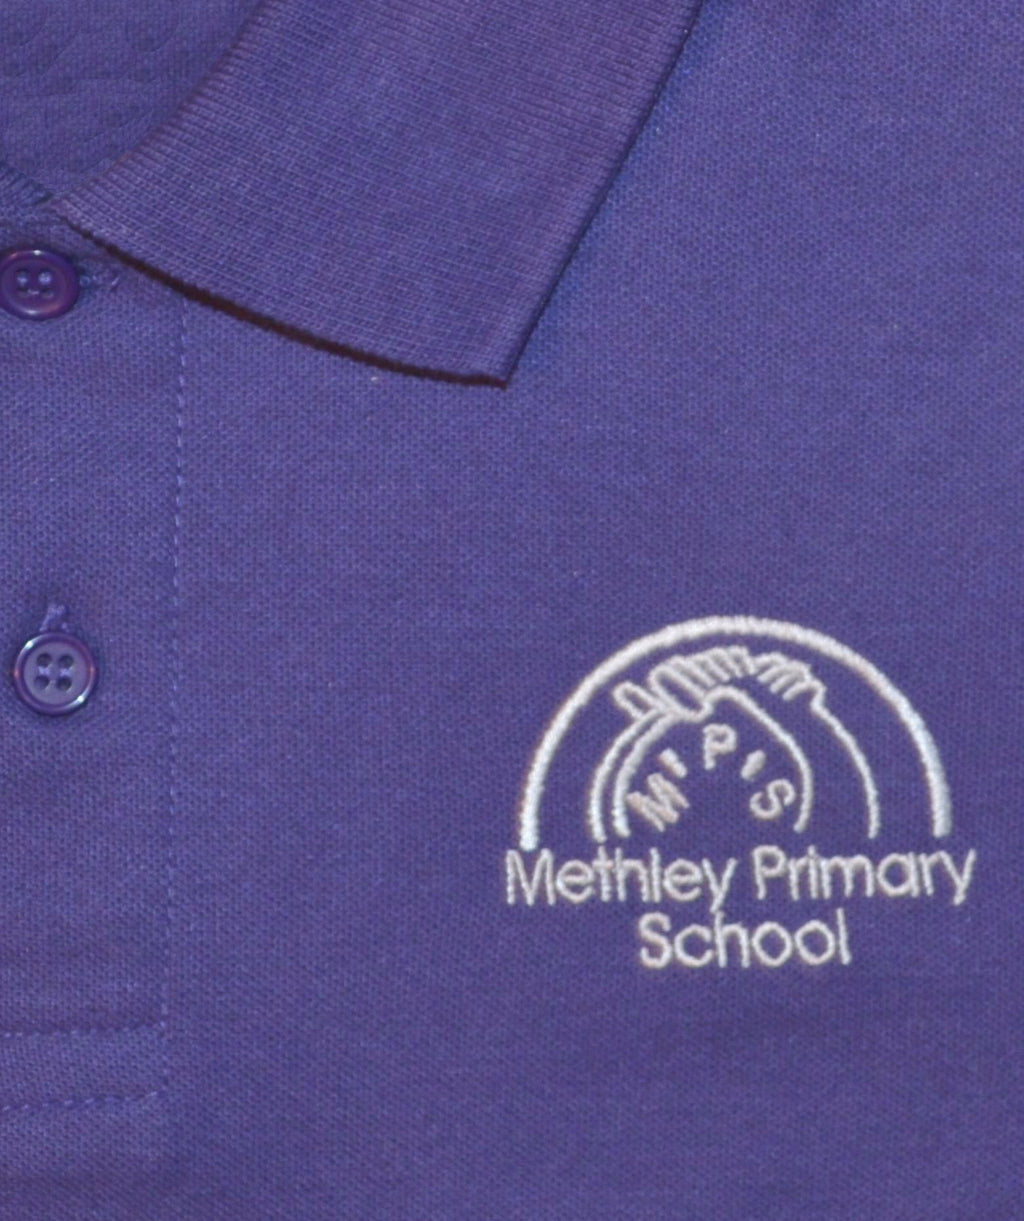 Methley Primary School Uniform Bundle 3